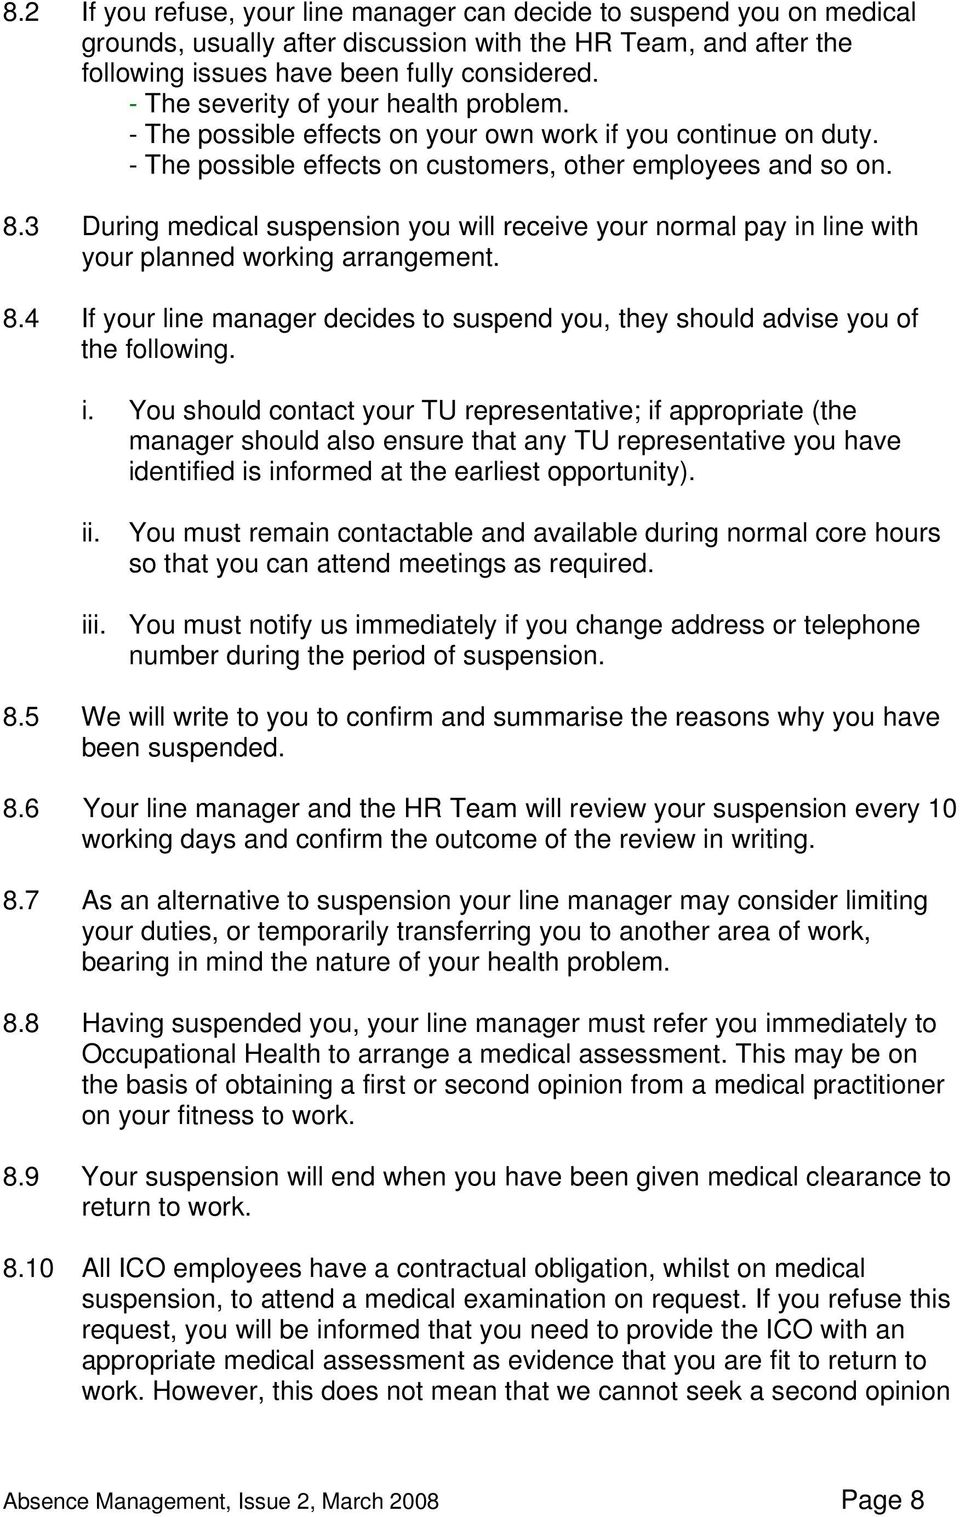 3 During medical suspension you will receive your normal pay in